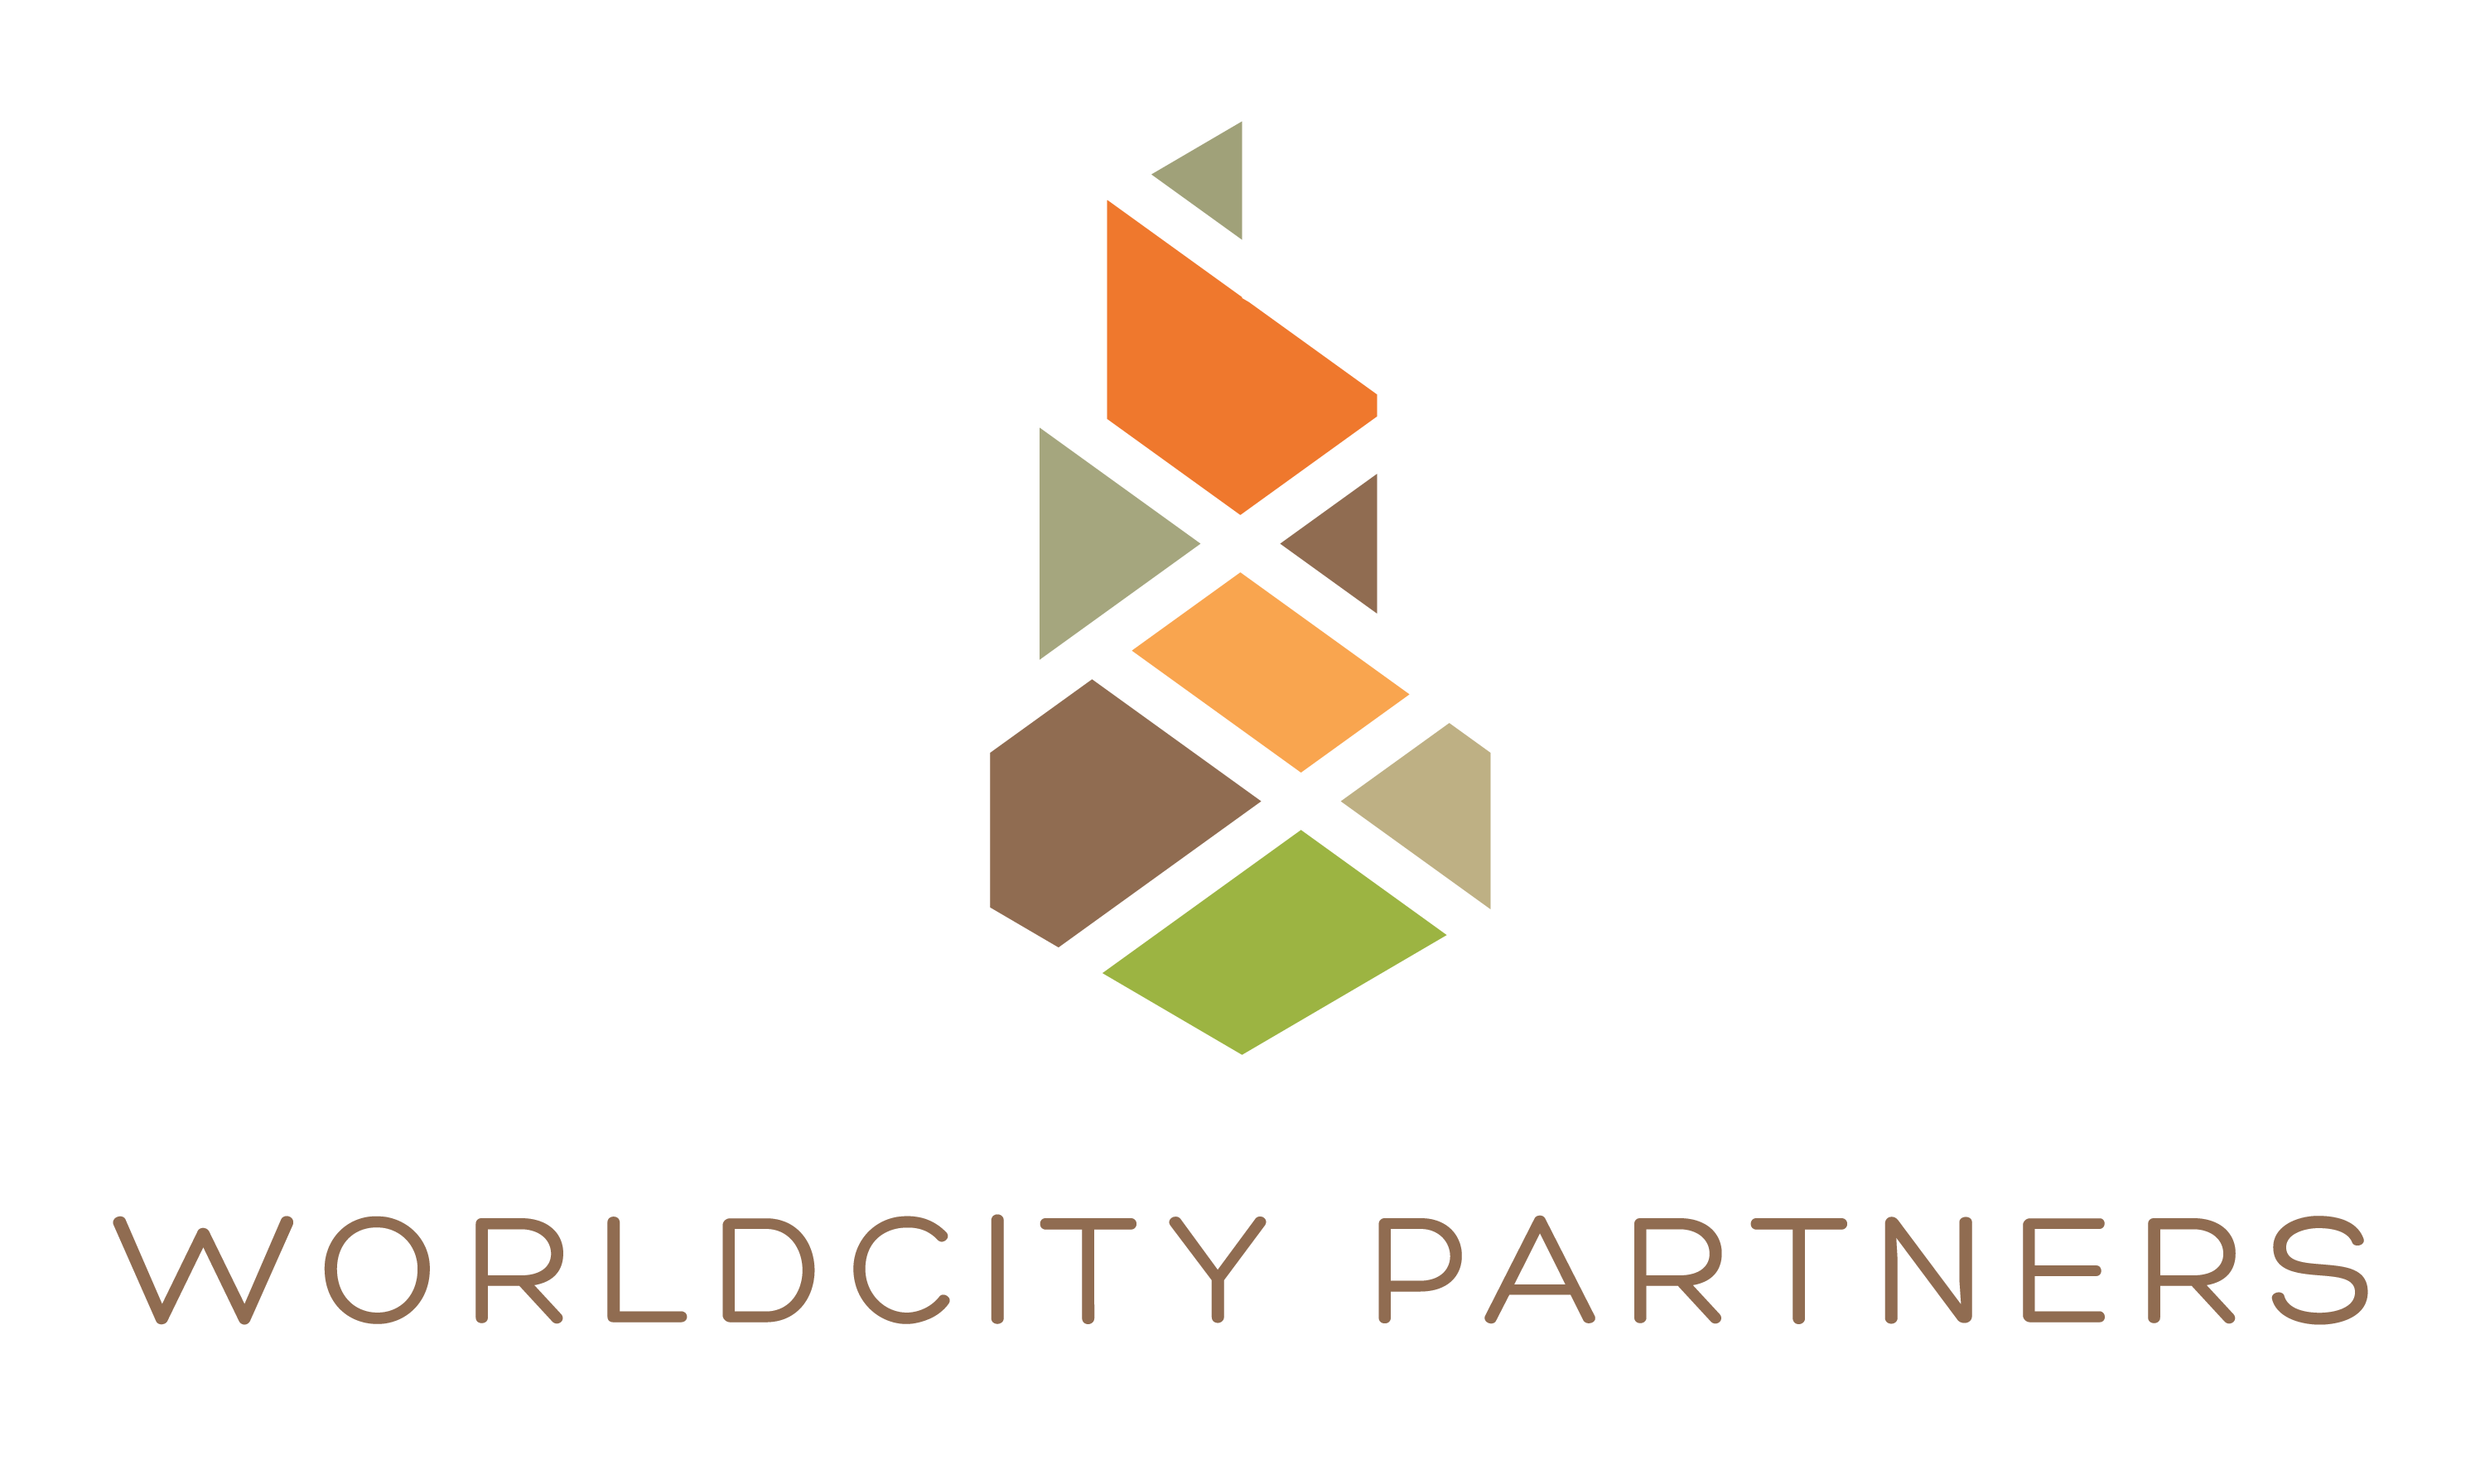 WorldCity Partners